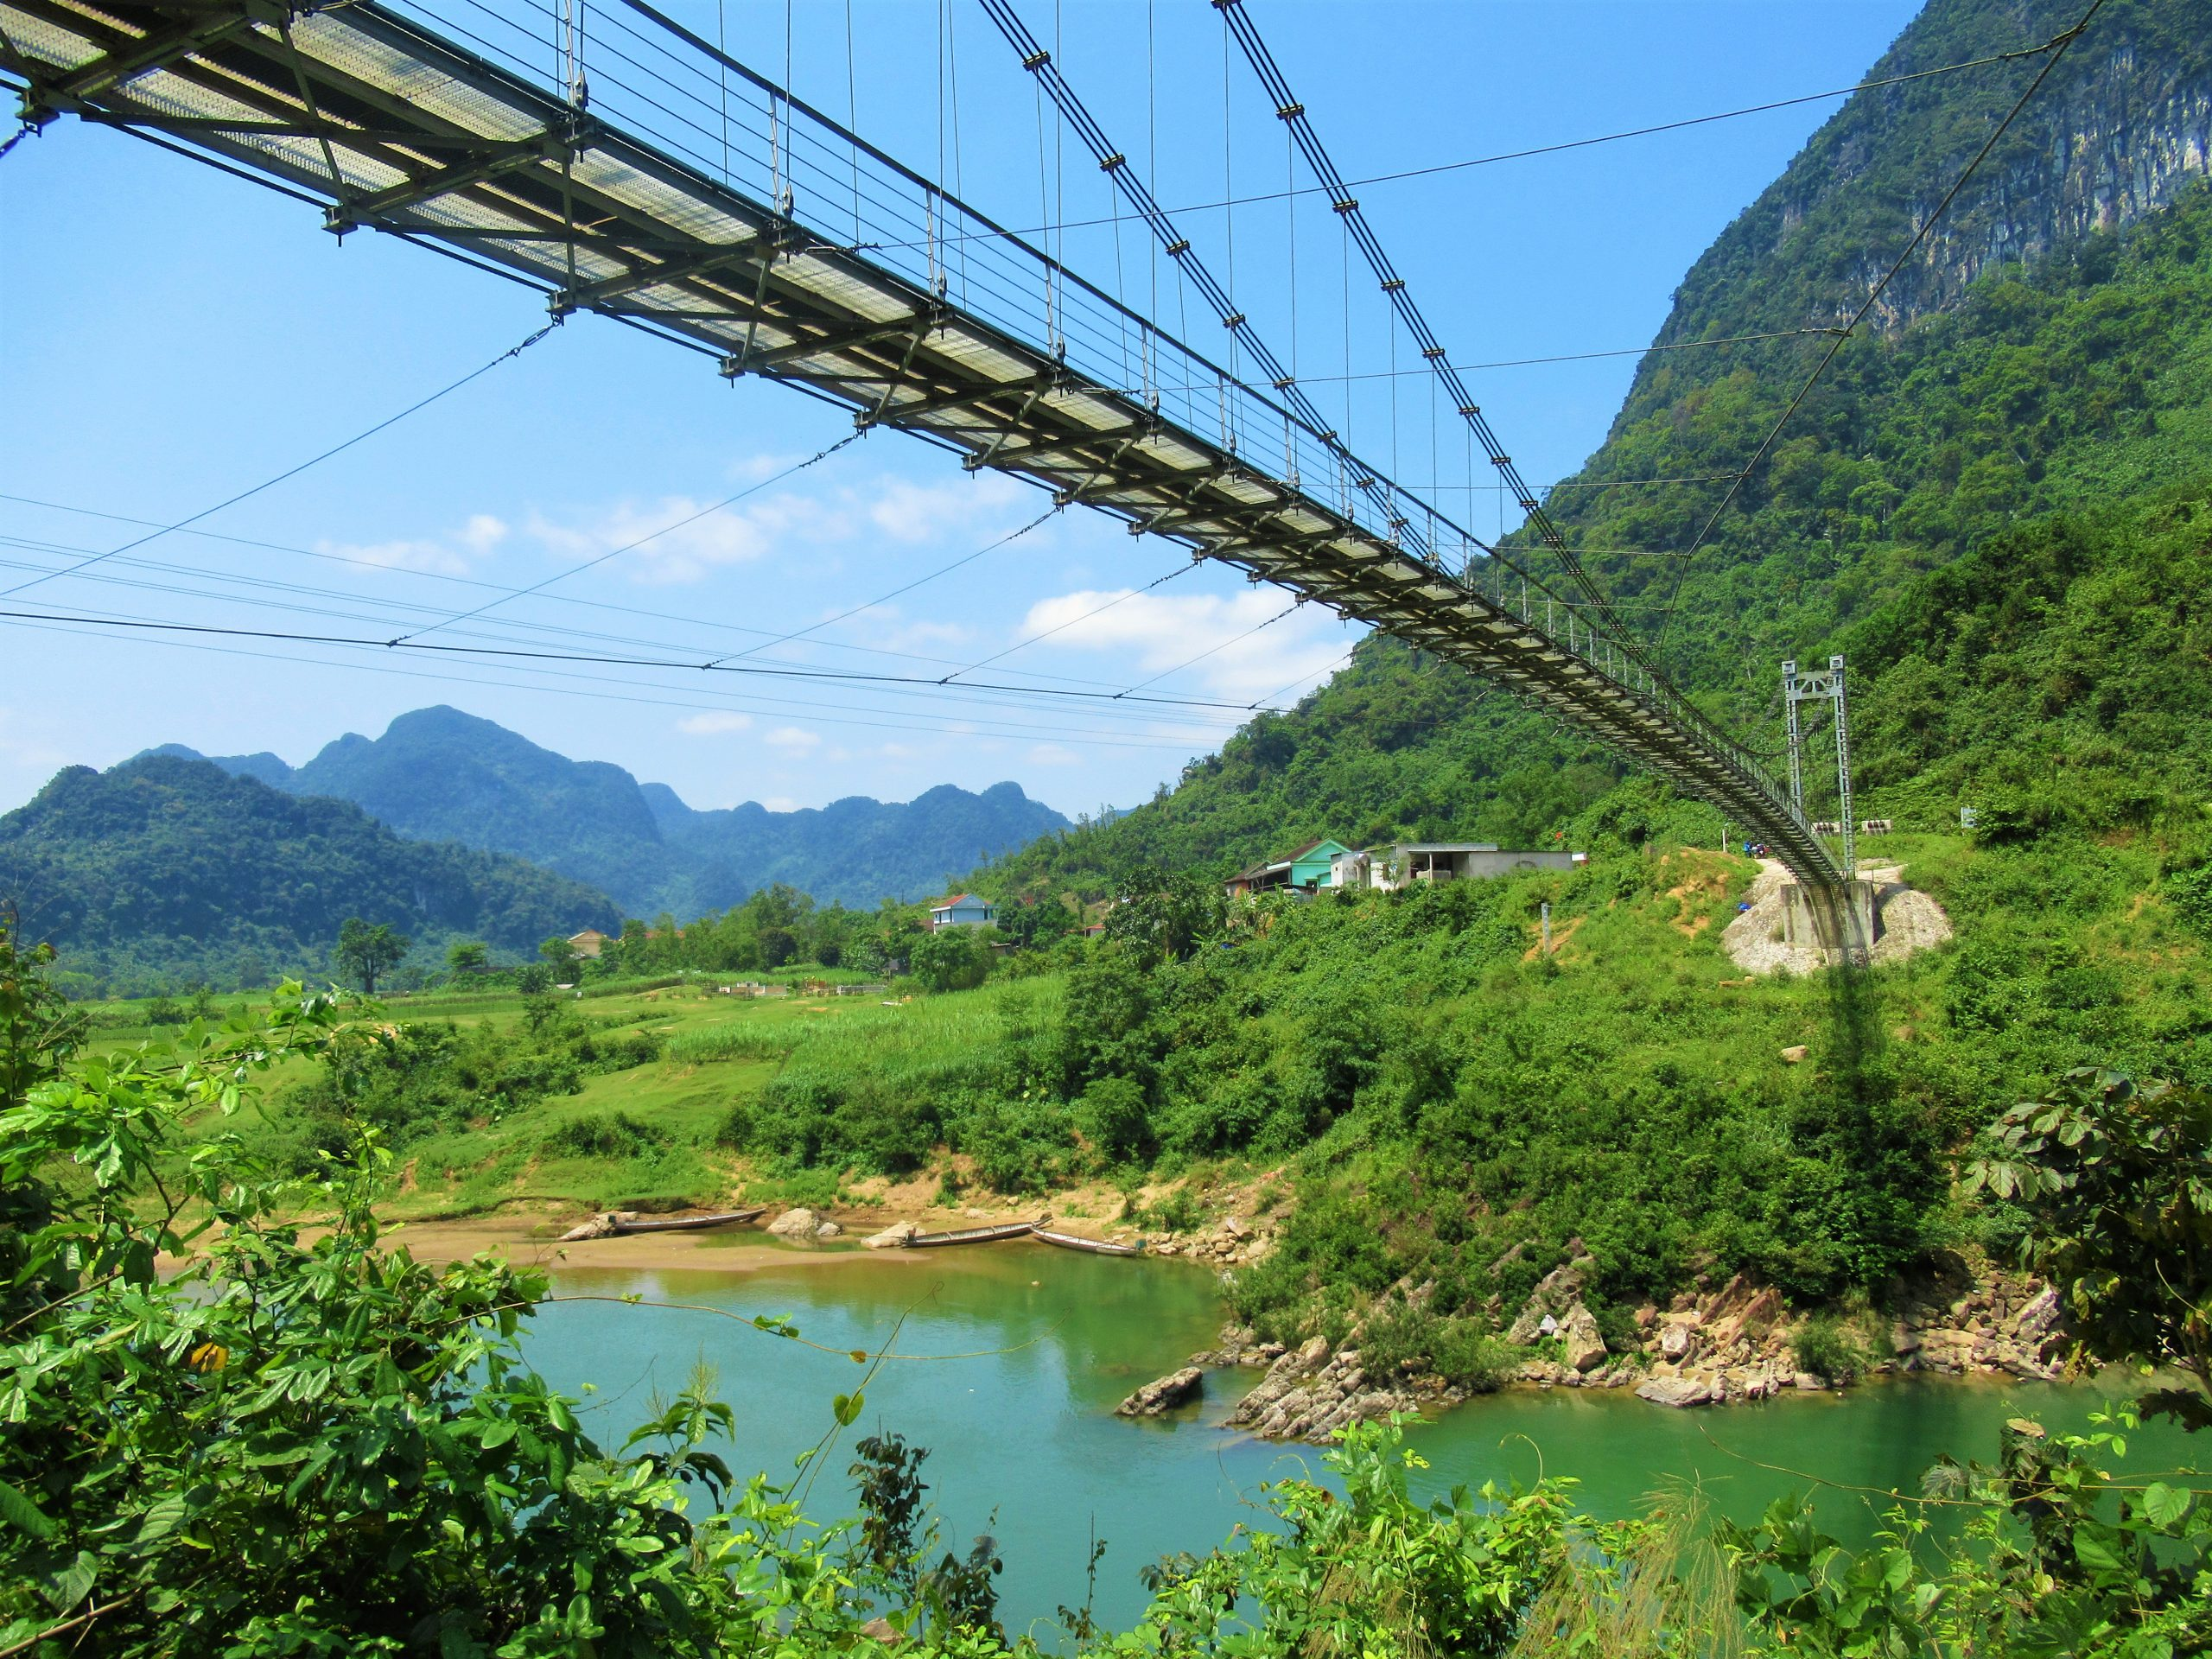 A suspension bridge on the Long Dai River, Ho Chi Minh West is Best Loop, Central Vietnam